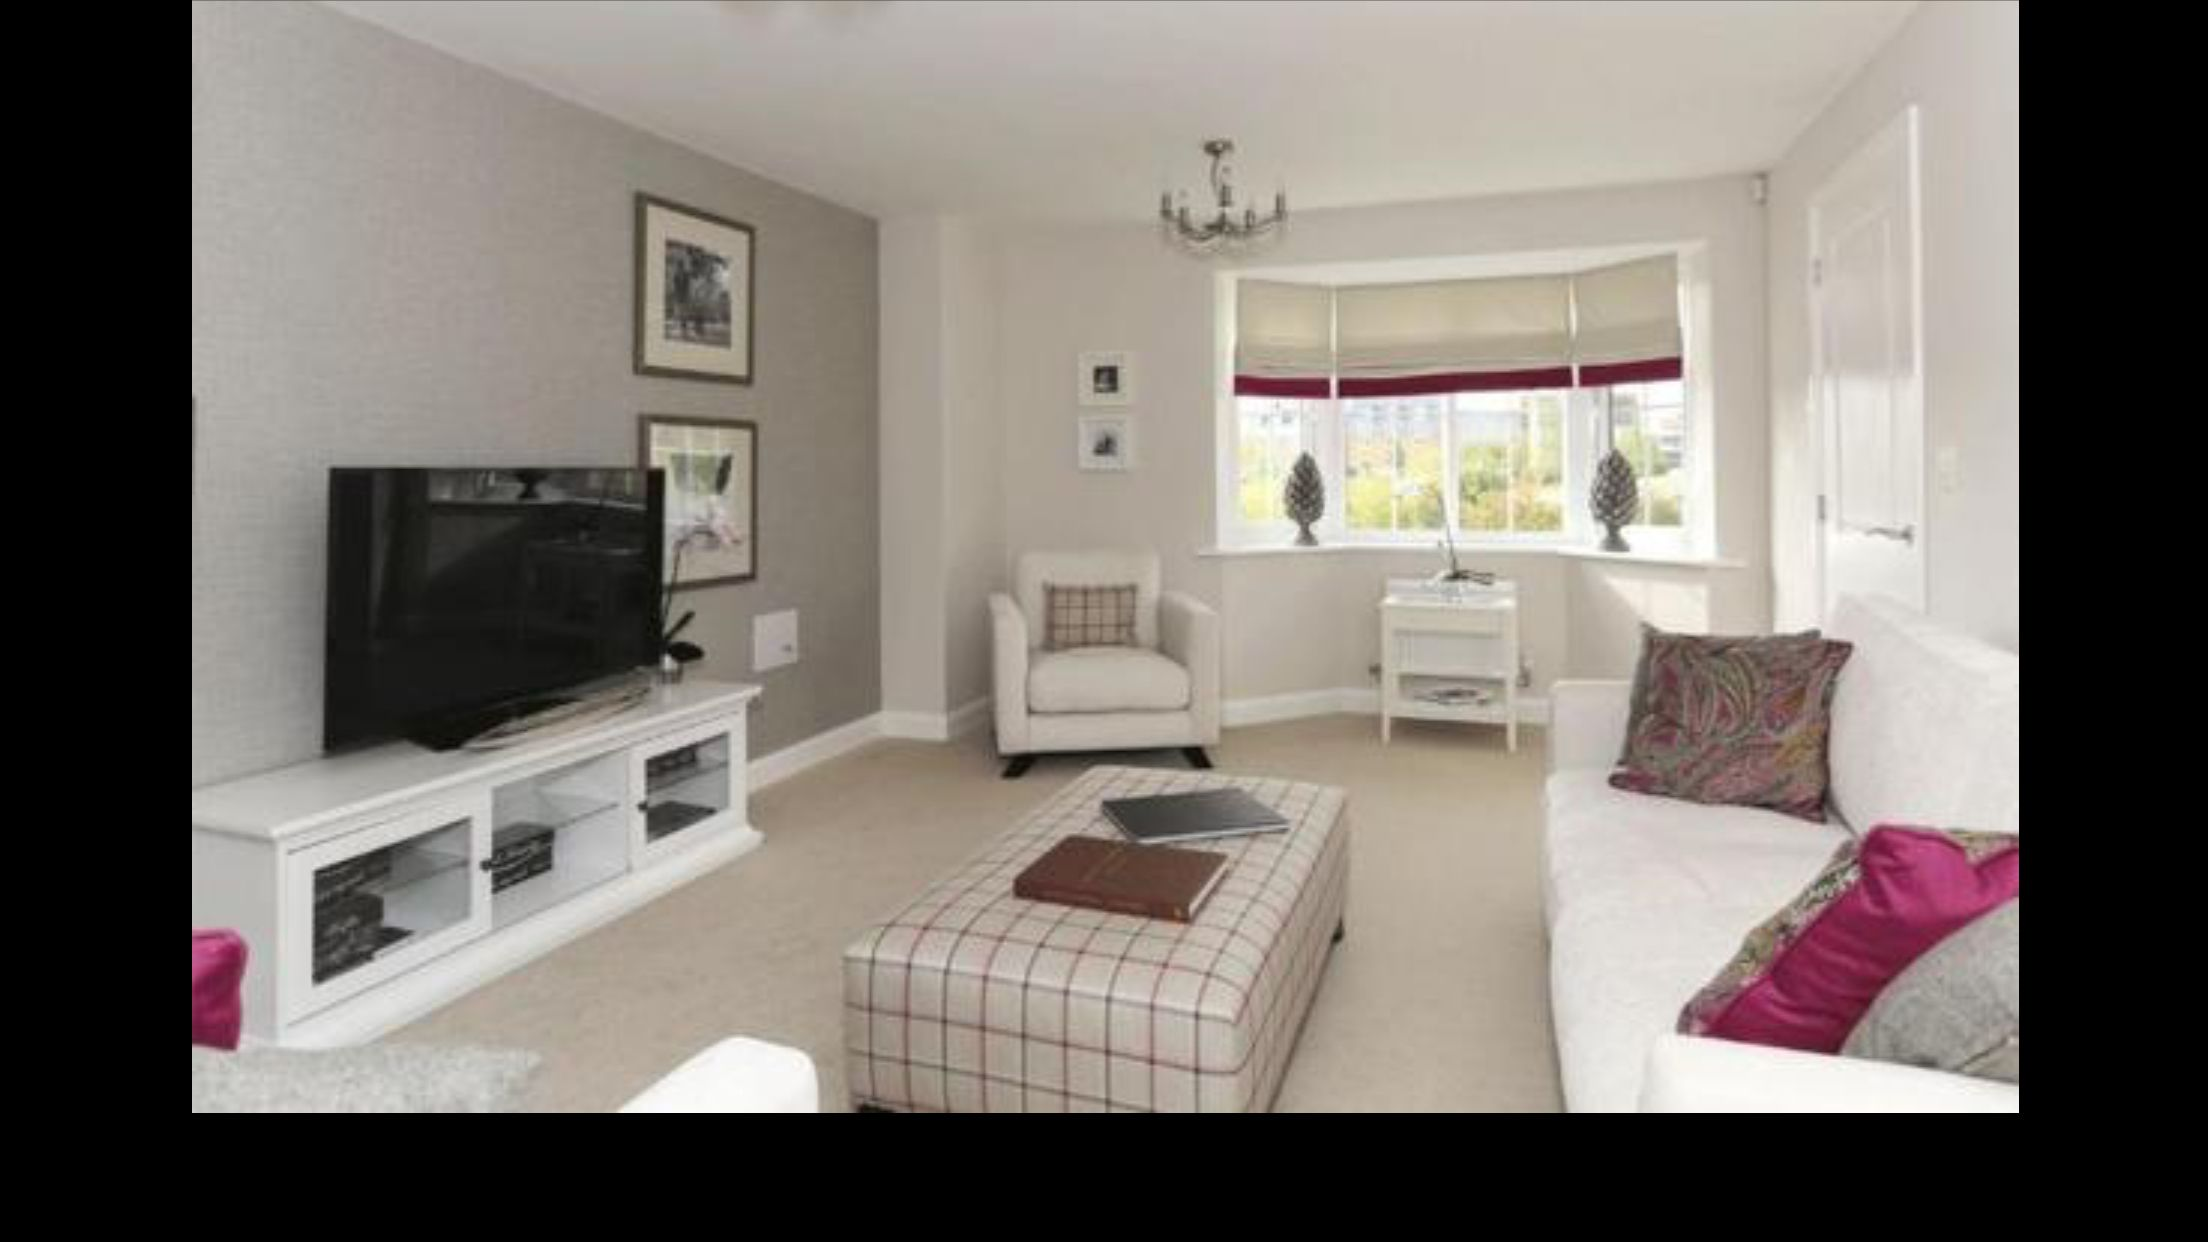 Beautiful Barratt show home with white furniture